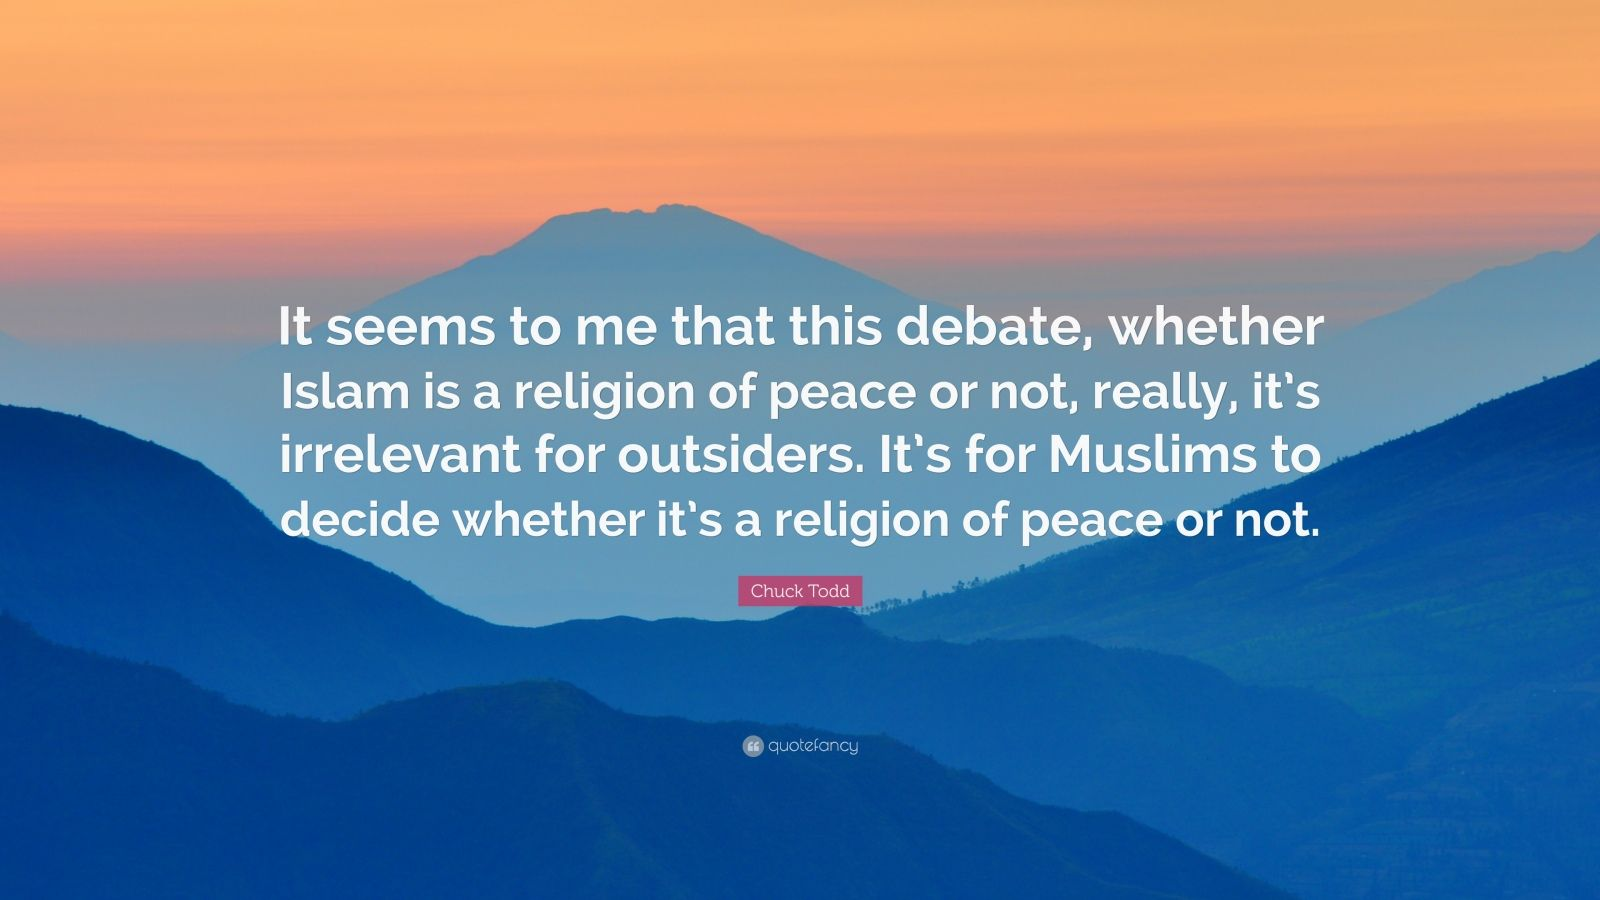 essay on islam is a religion of peace Islam: religion of peace two different visions of islam: there are two different visions of islam the first is seeing islam through its divine source, namely the quran and the method of this vision is to understand islam through its own terminology and language.